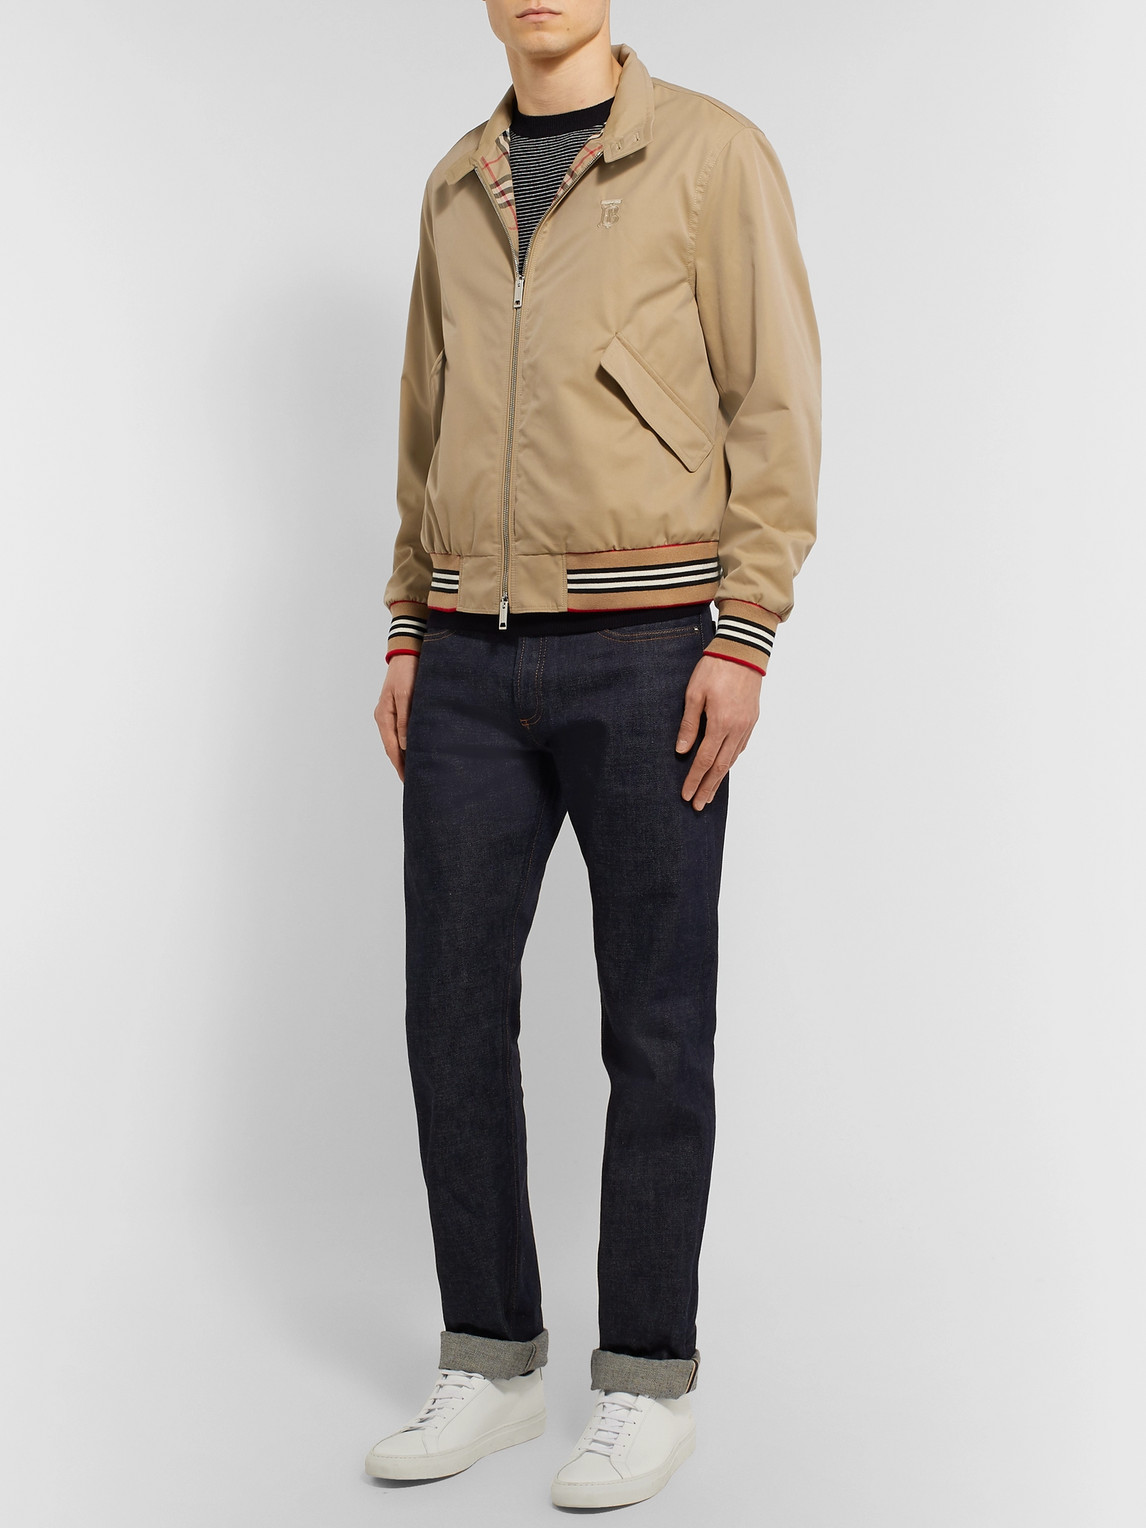 Burberry Jackets LOGO-EMBROIDERED COTTON-TWILL BOMBER JACKET